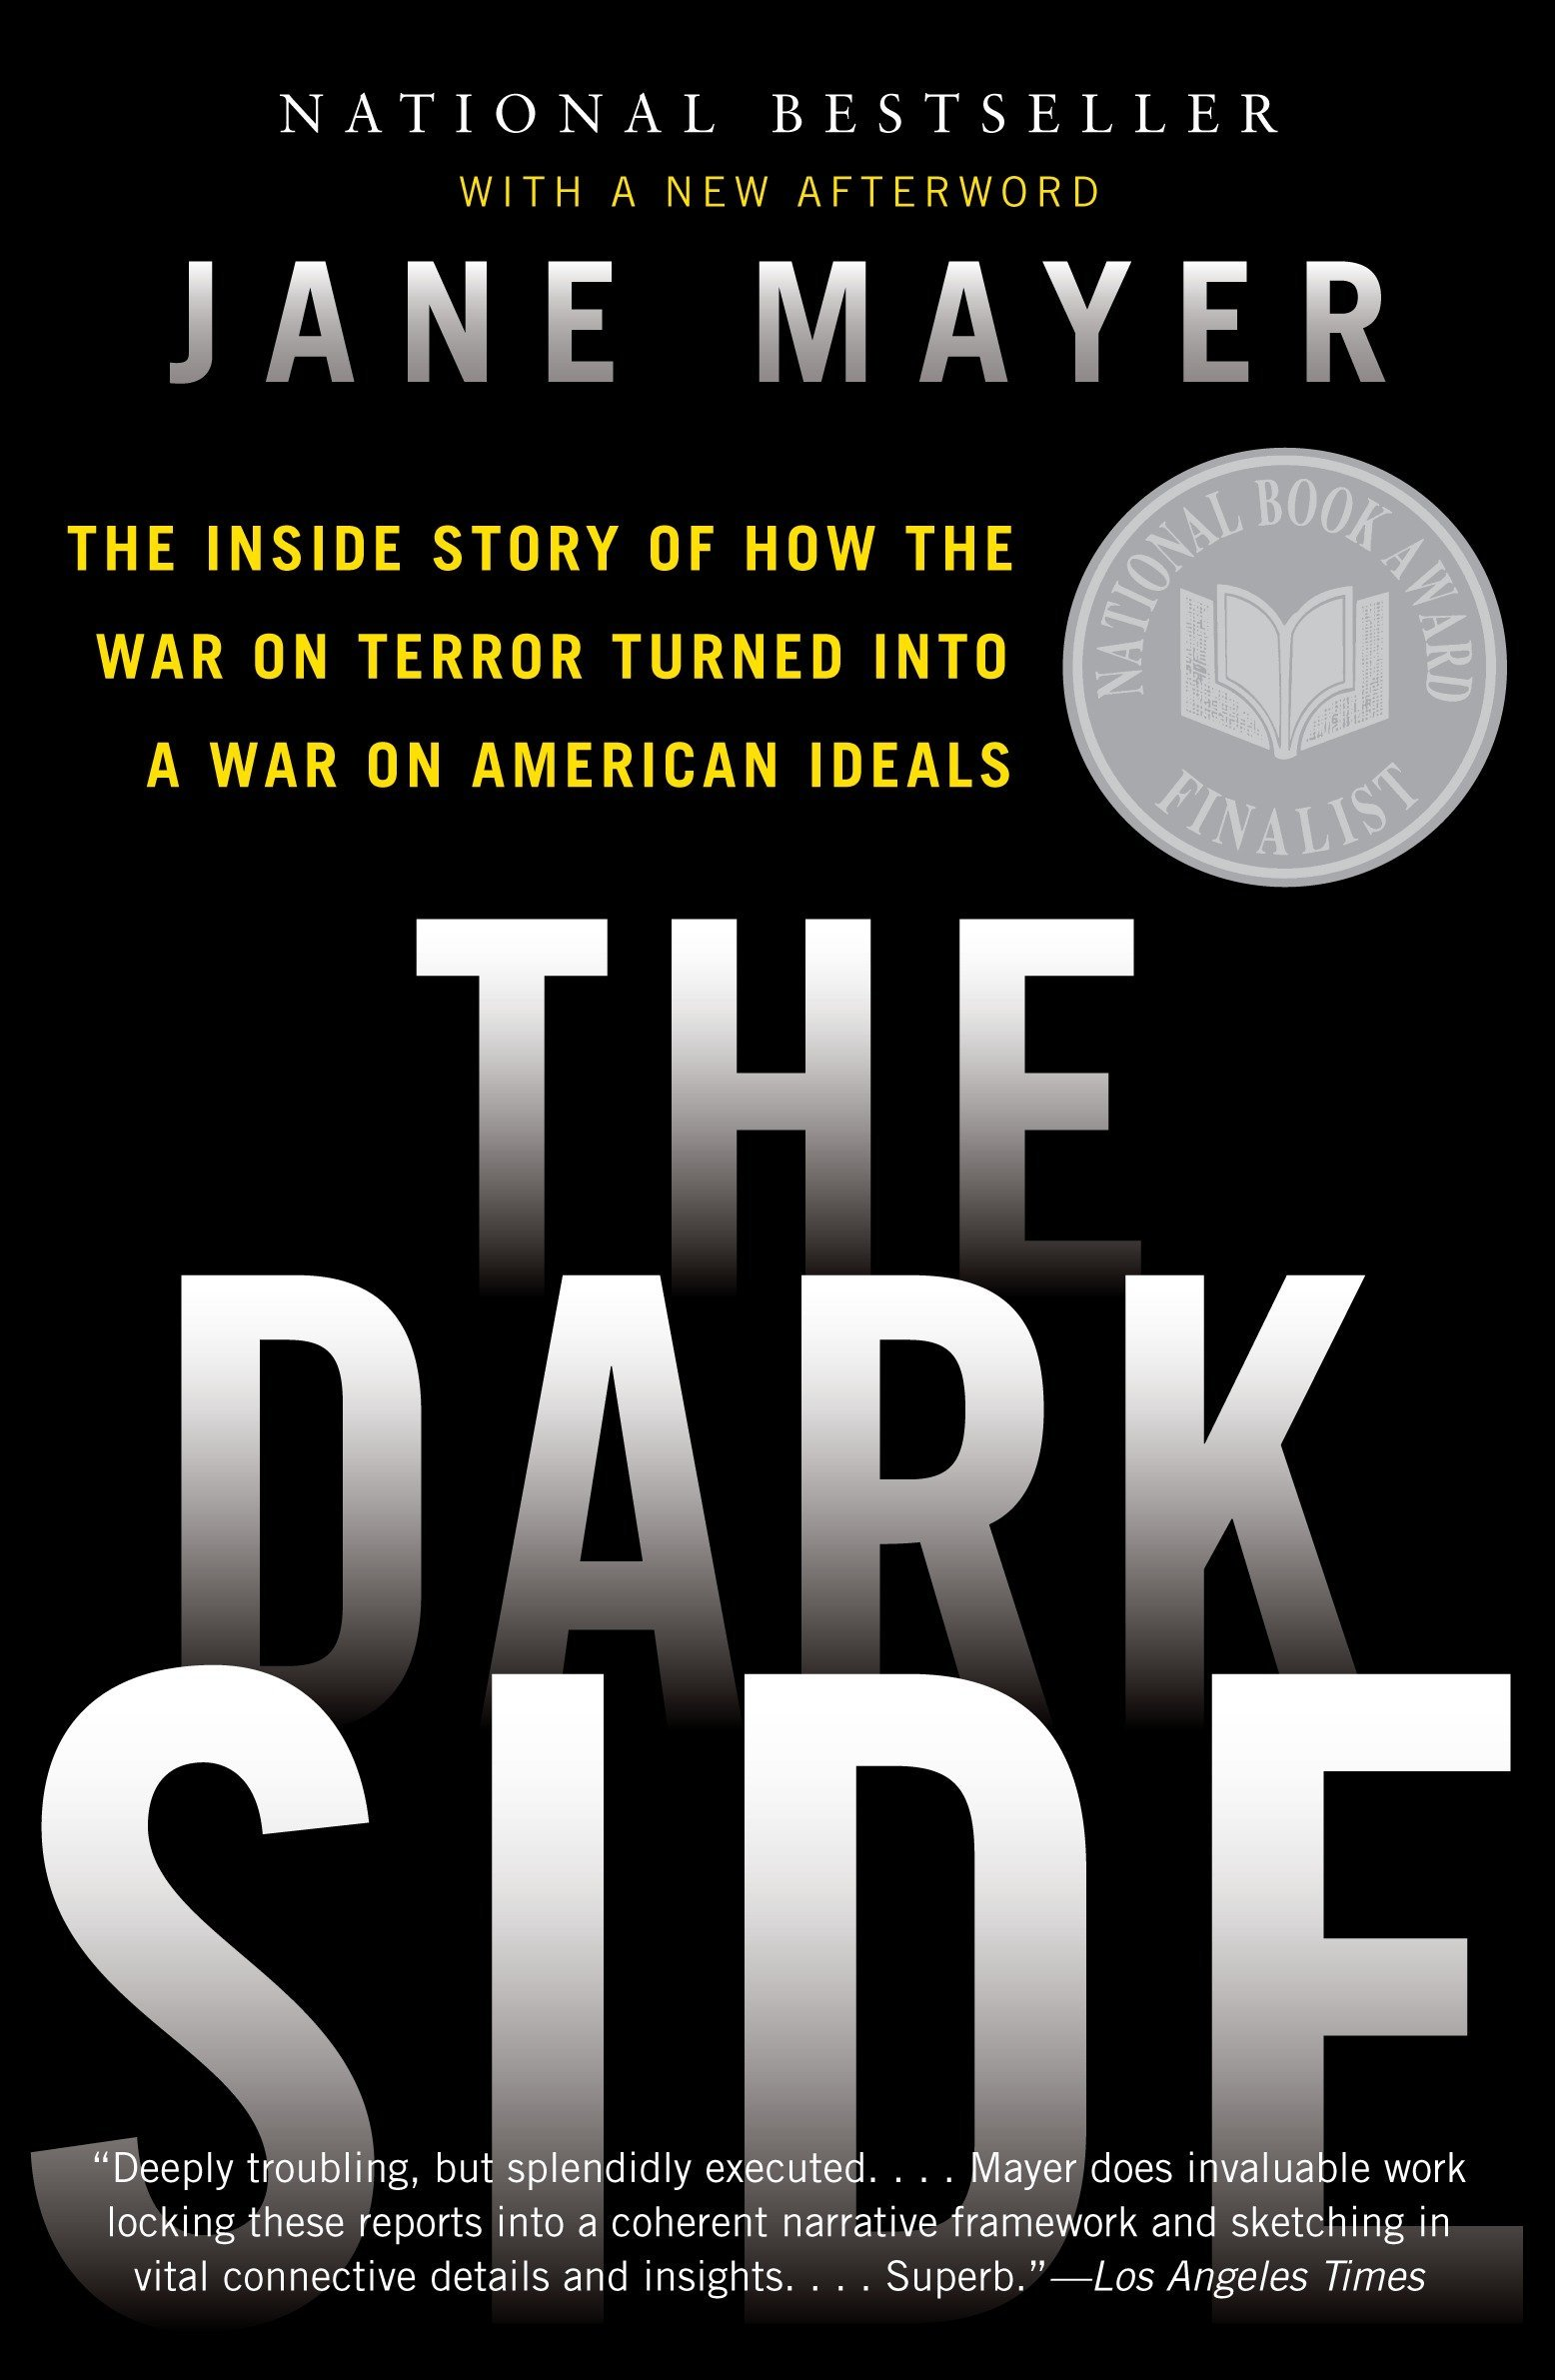 Amazon fr - The Dark Side: The Inside Story of How the War on Terror